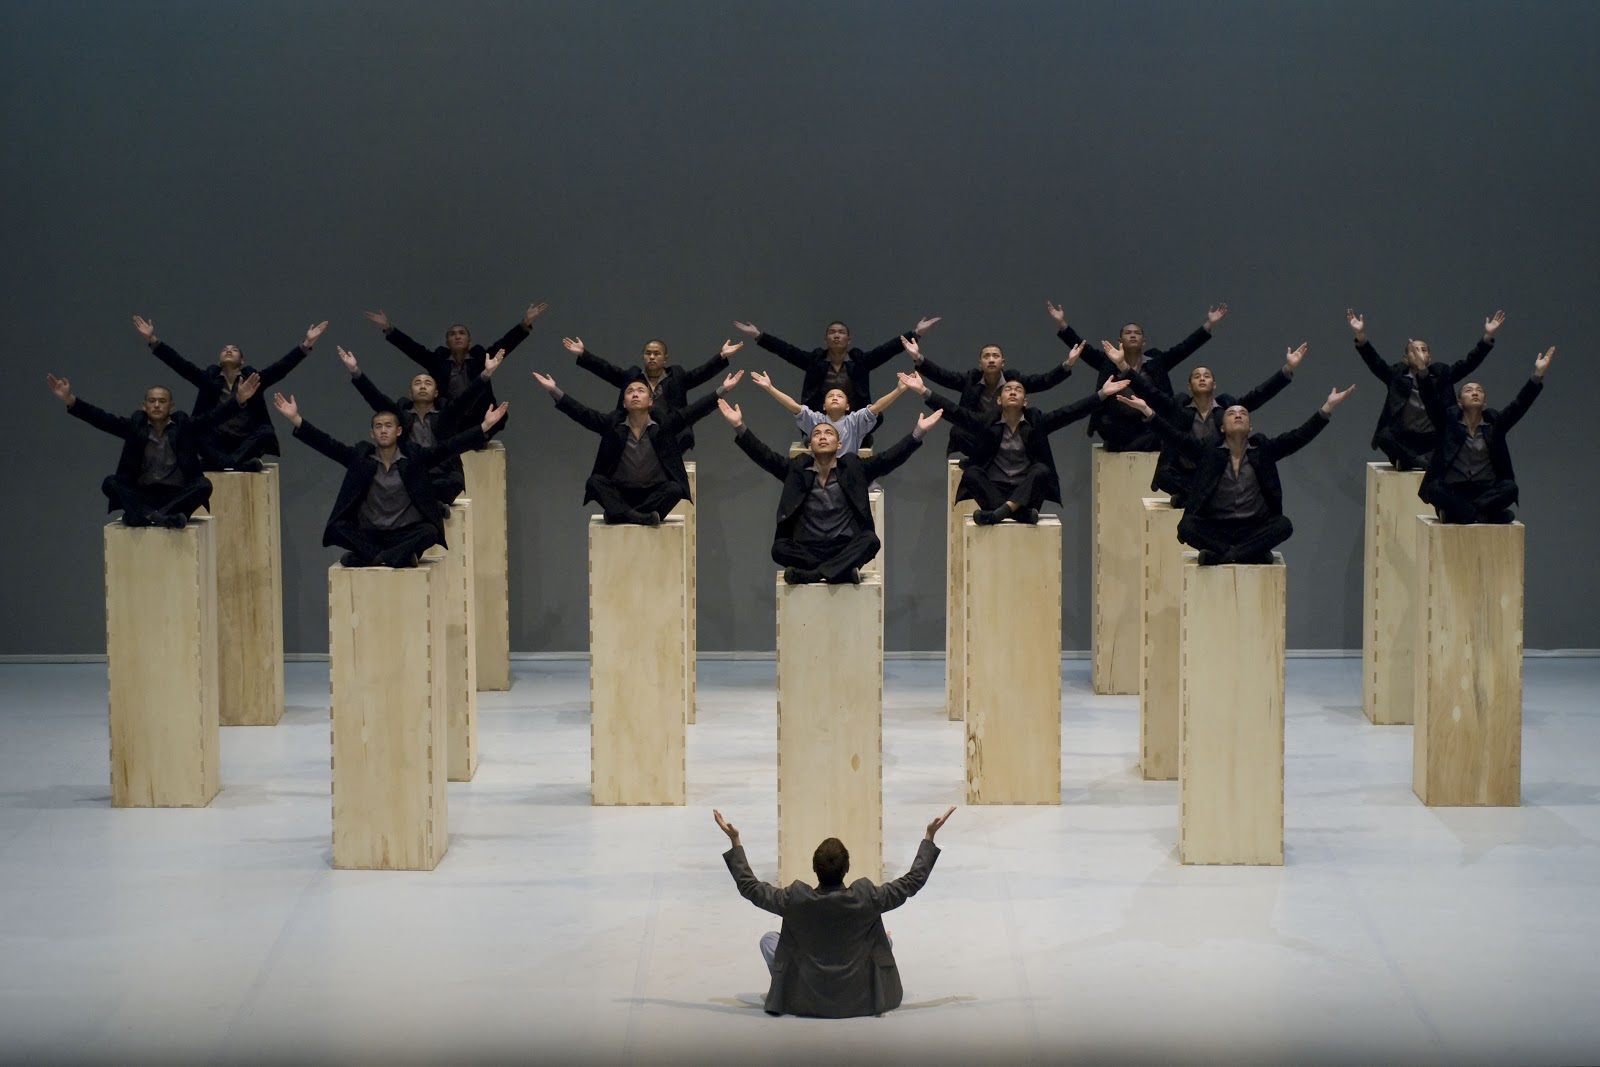 Sidi Larbi Cherkaoui & The Shaolin Monks, Sutra, with Anthony Gormley and Szymon Brzóska